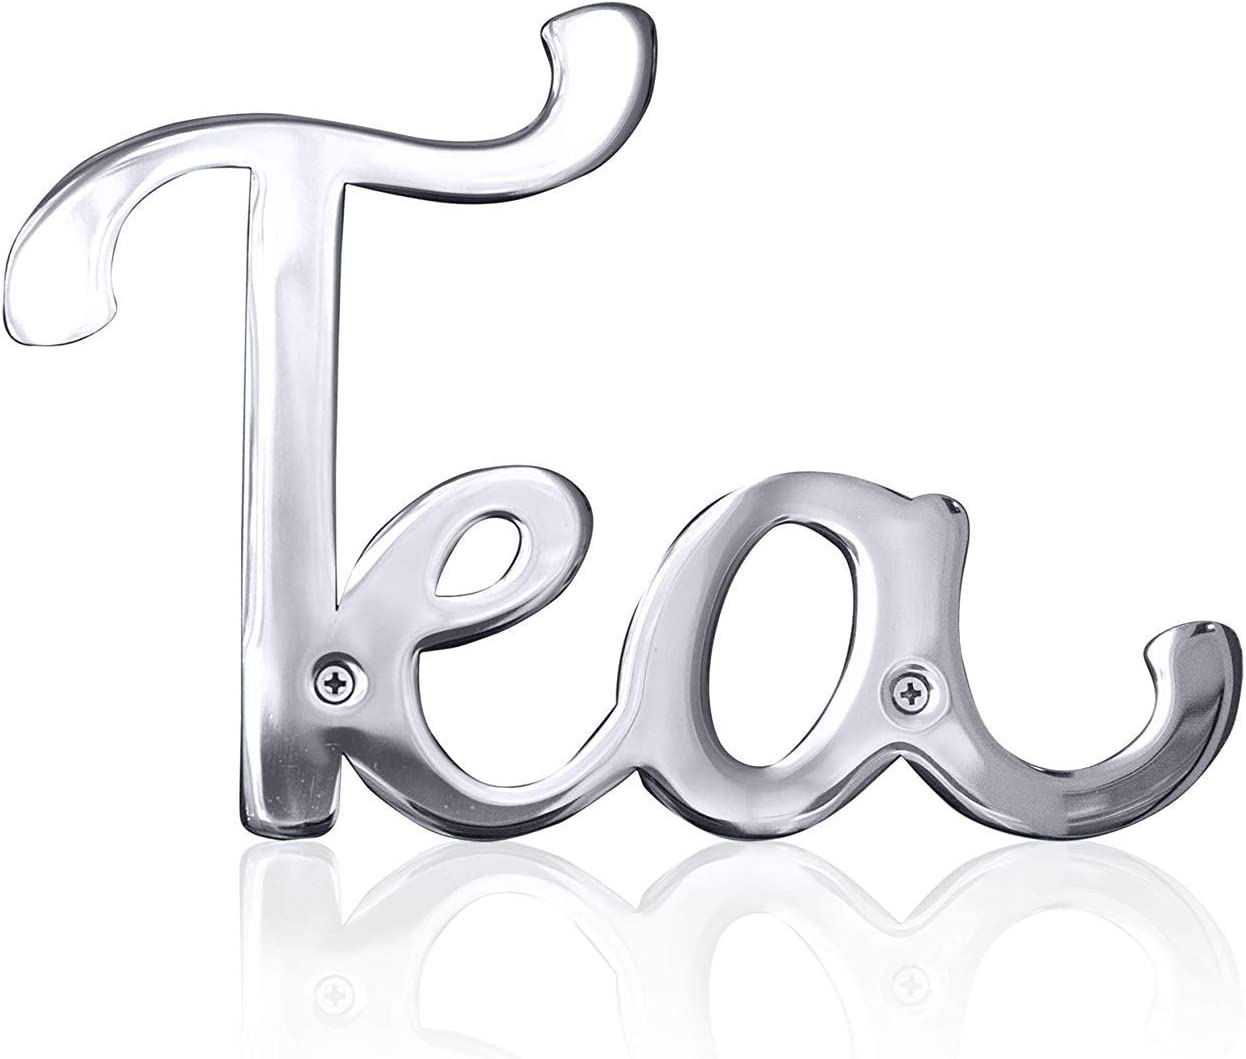 Way Of Hearts Steel Metal Tea Sign For Farmhouse Kitchen Wall Decor, Rustic Vintage Kitchen Dining Room Decoration, Mirror Polished Stainless Steel Laser Cut Out Signs, Silver, 7.4